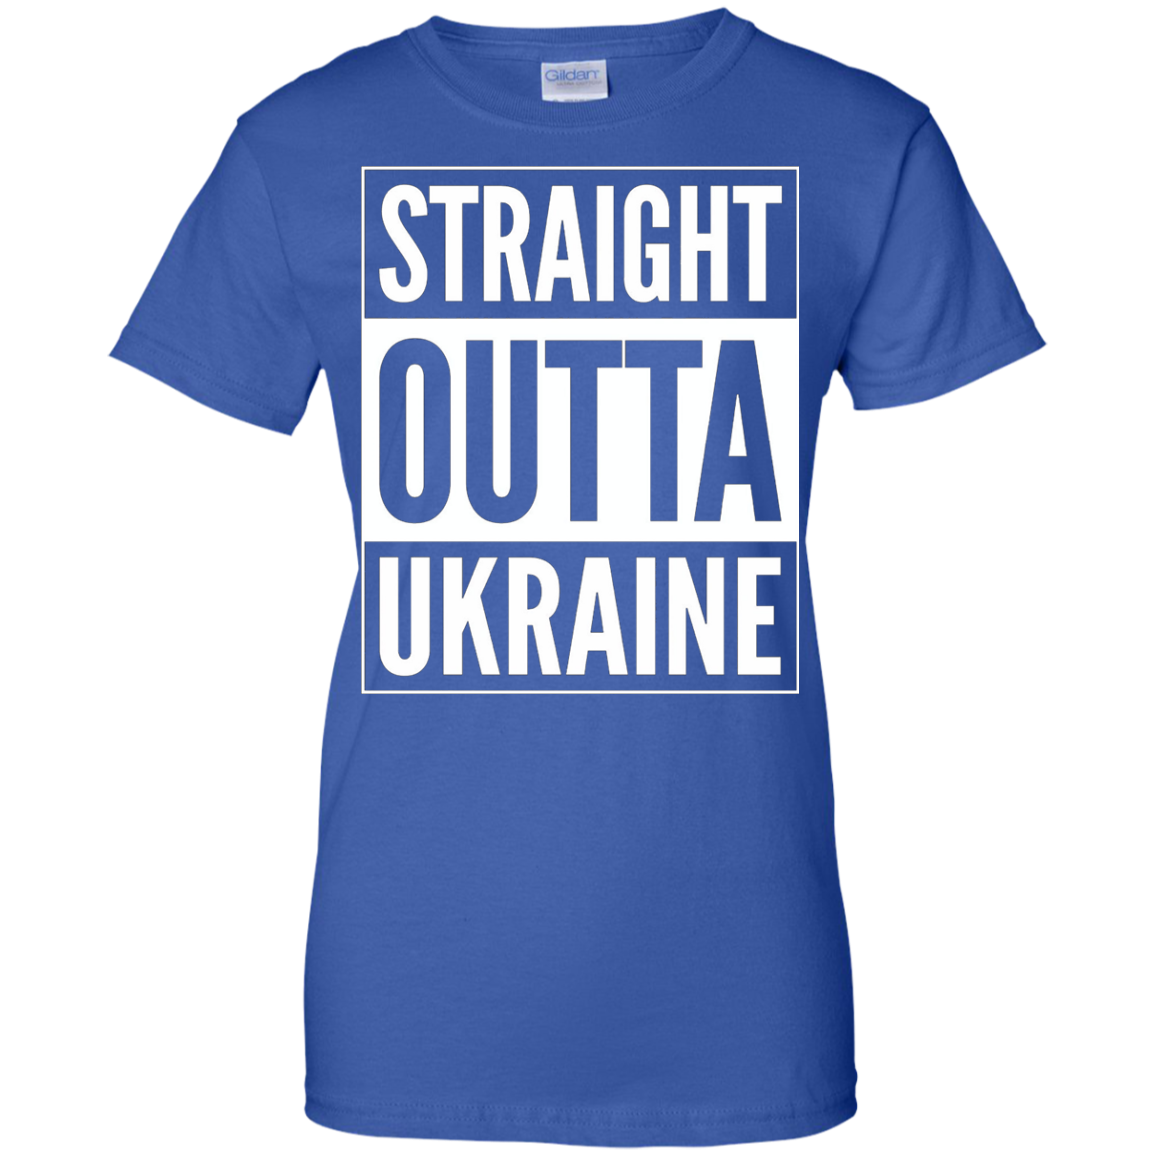 Straight Outta Ukraine T-Shirt - Rep your country Tee